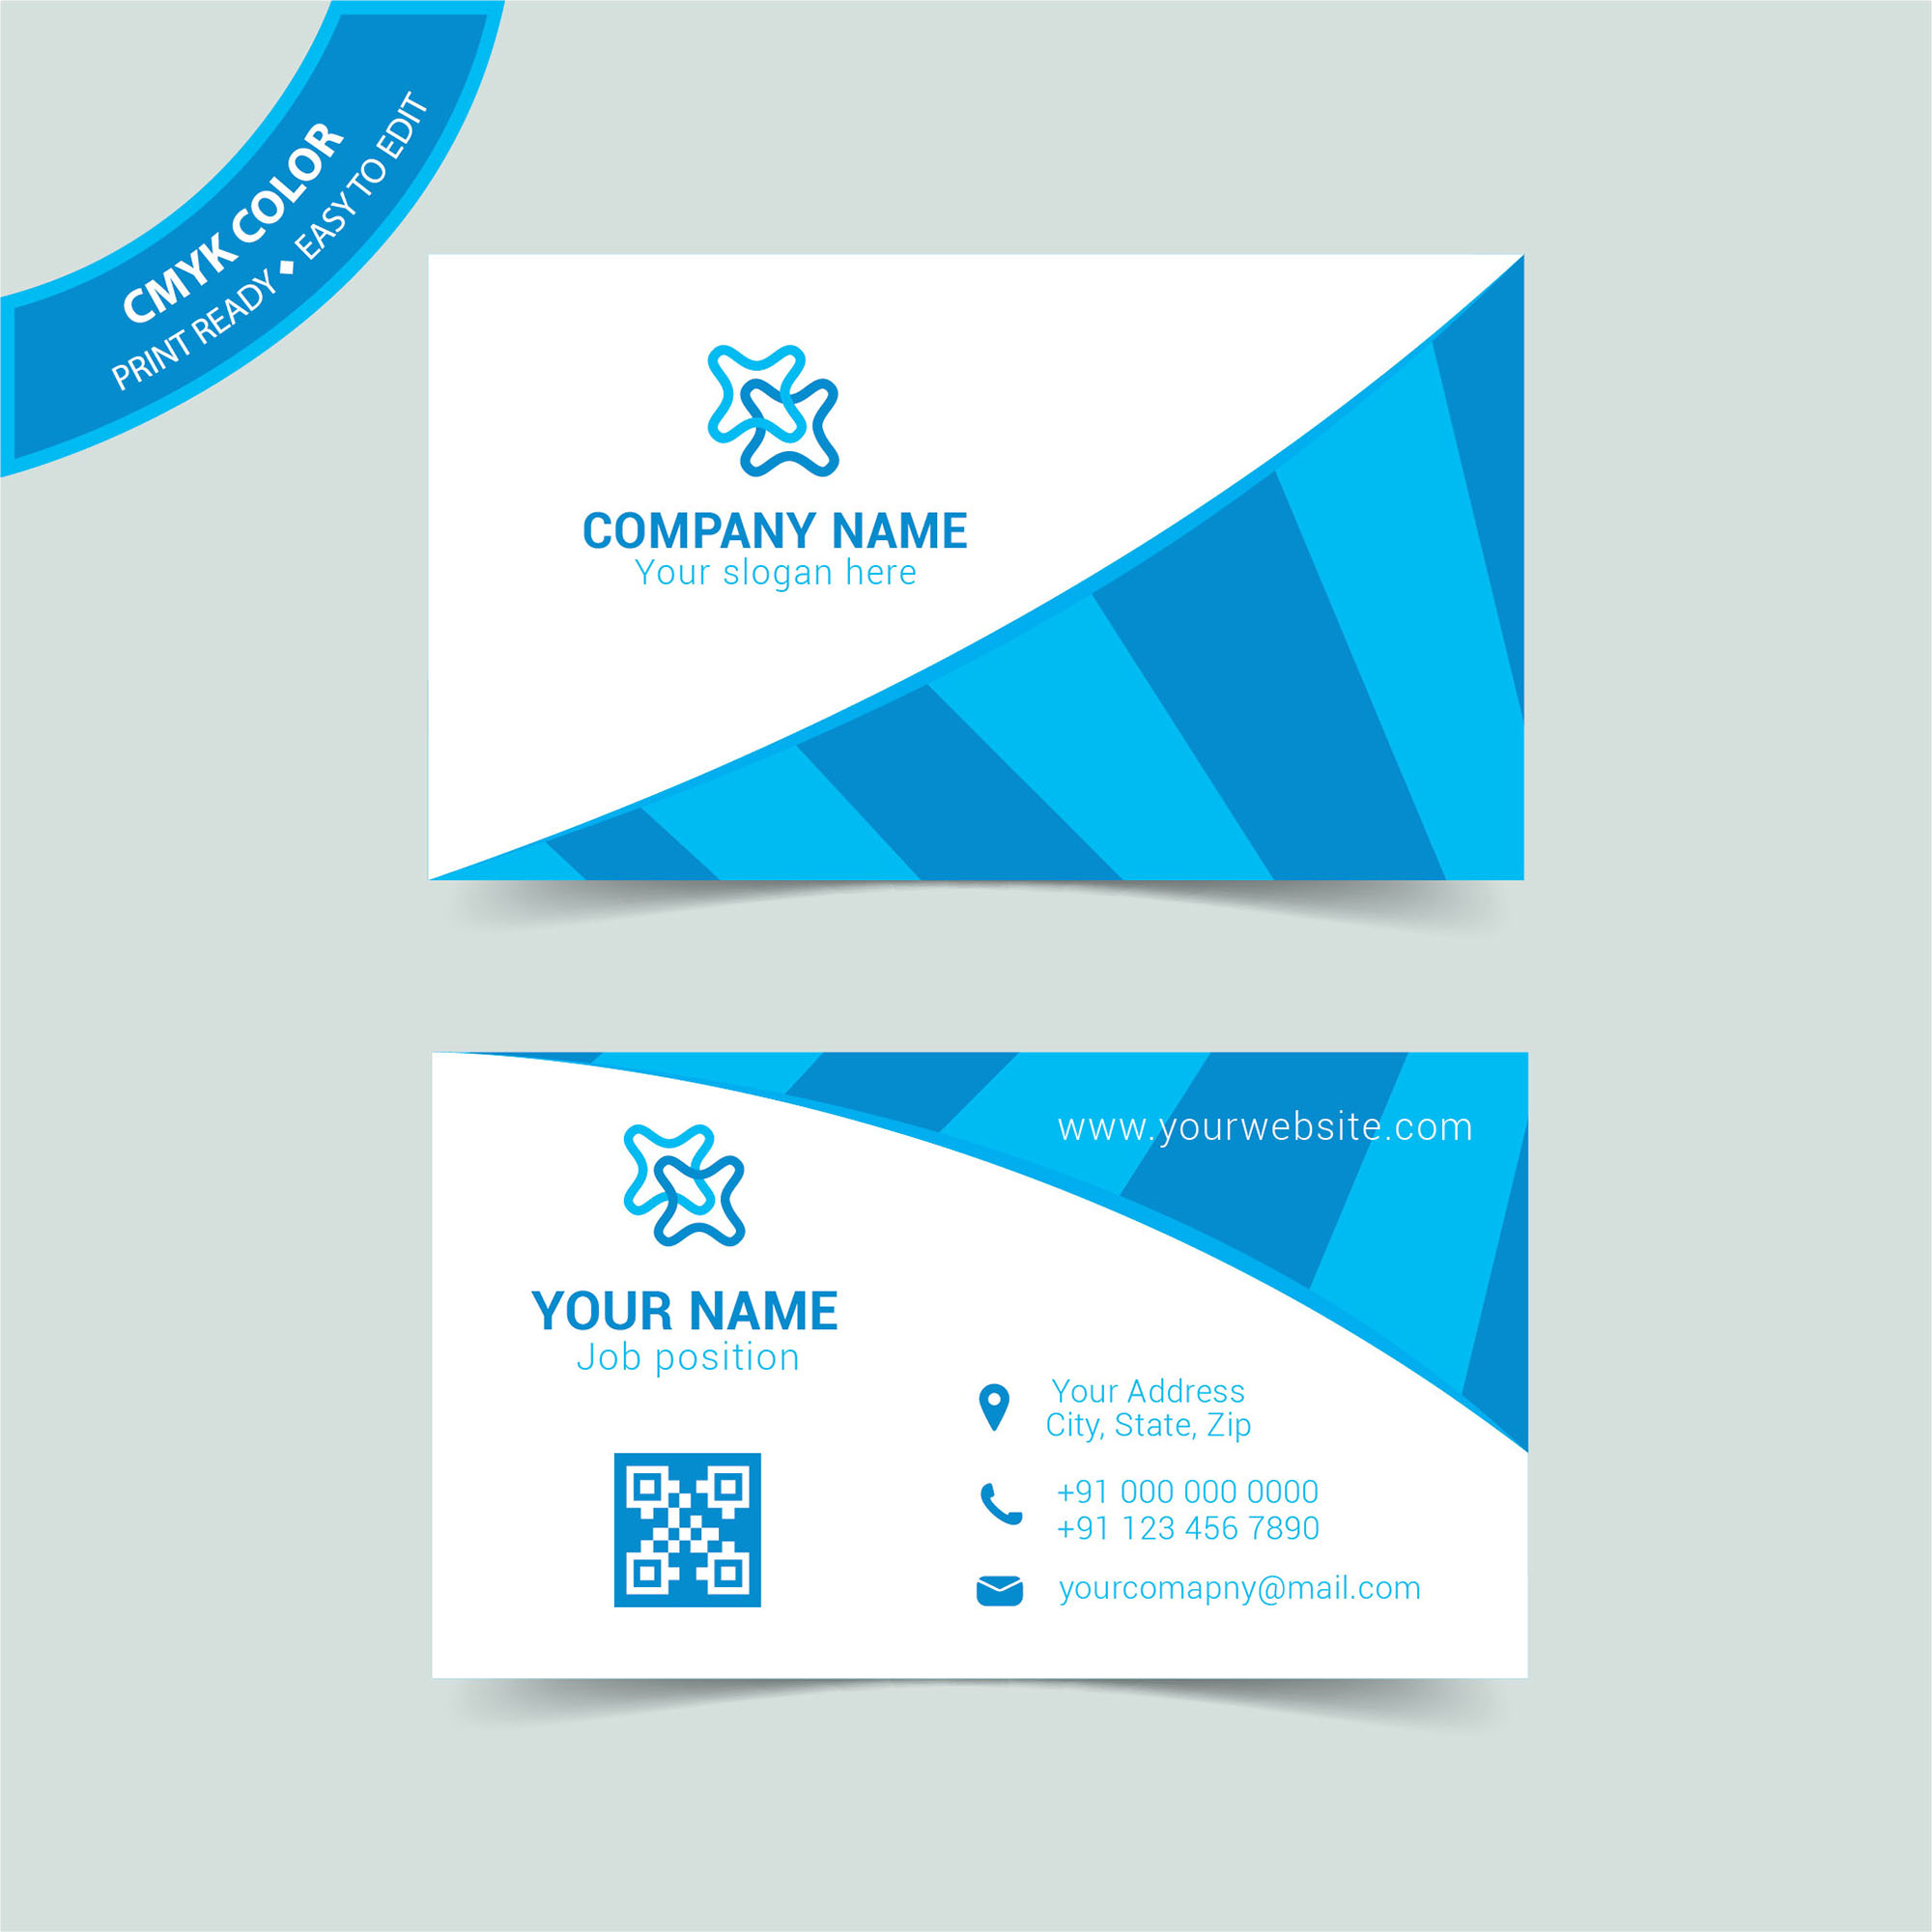 Professional business card templates free download wisxi business card business cards business card design business card template design templates accmission Images